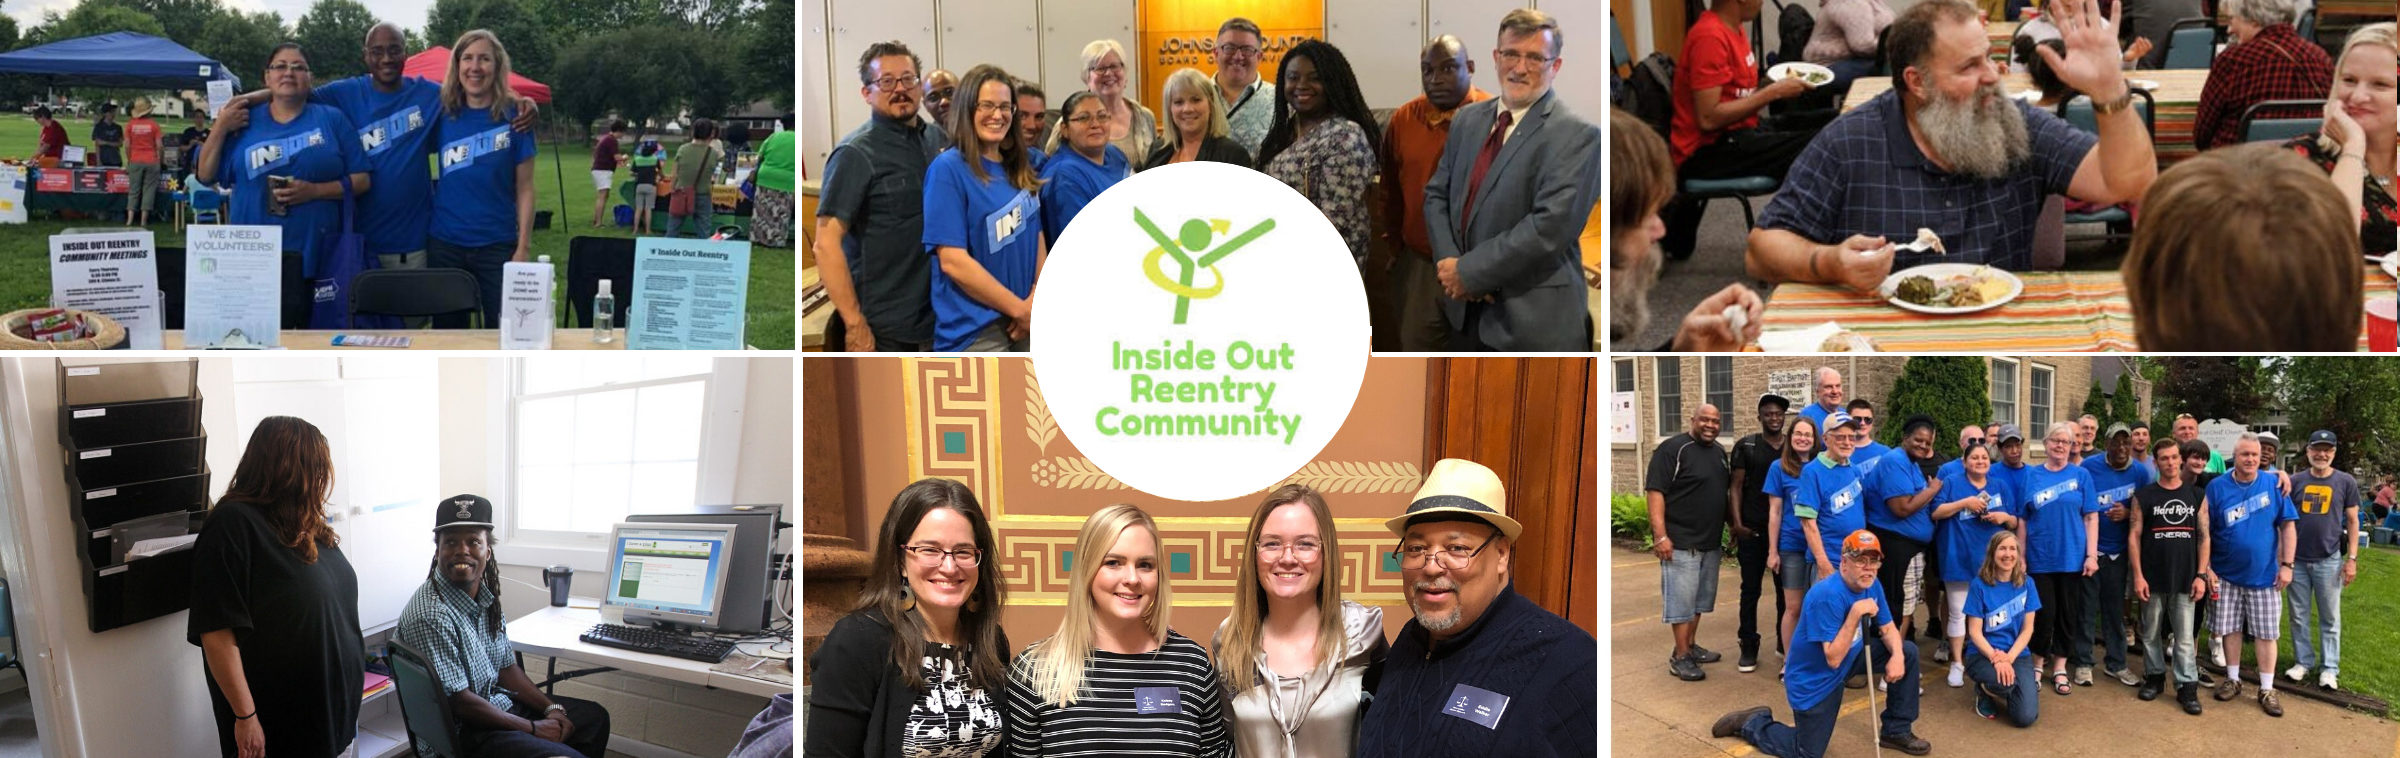 Inside Out Reentry Community